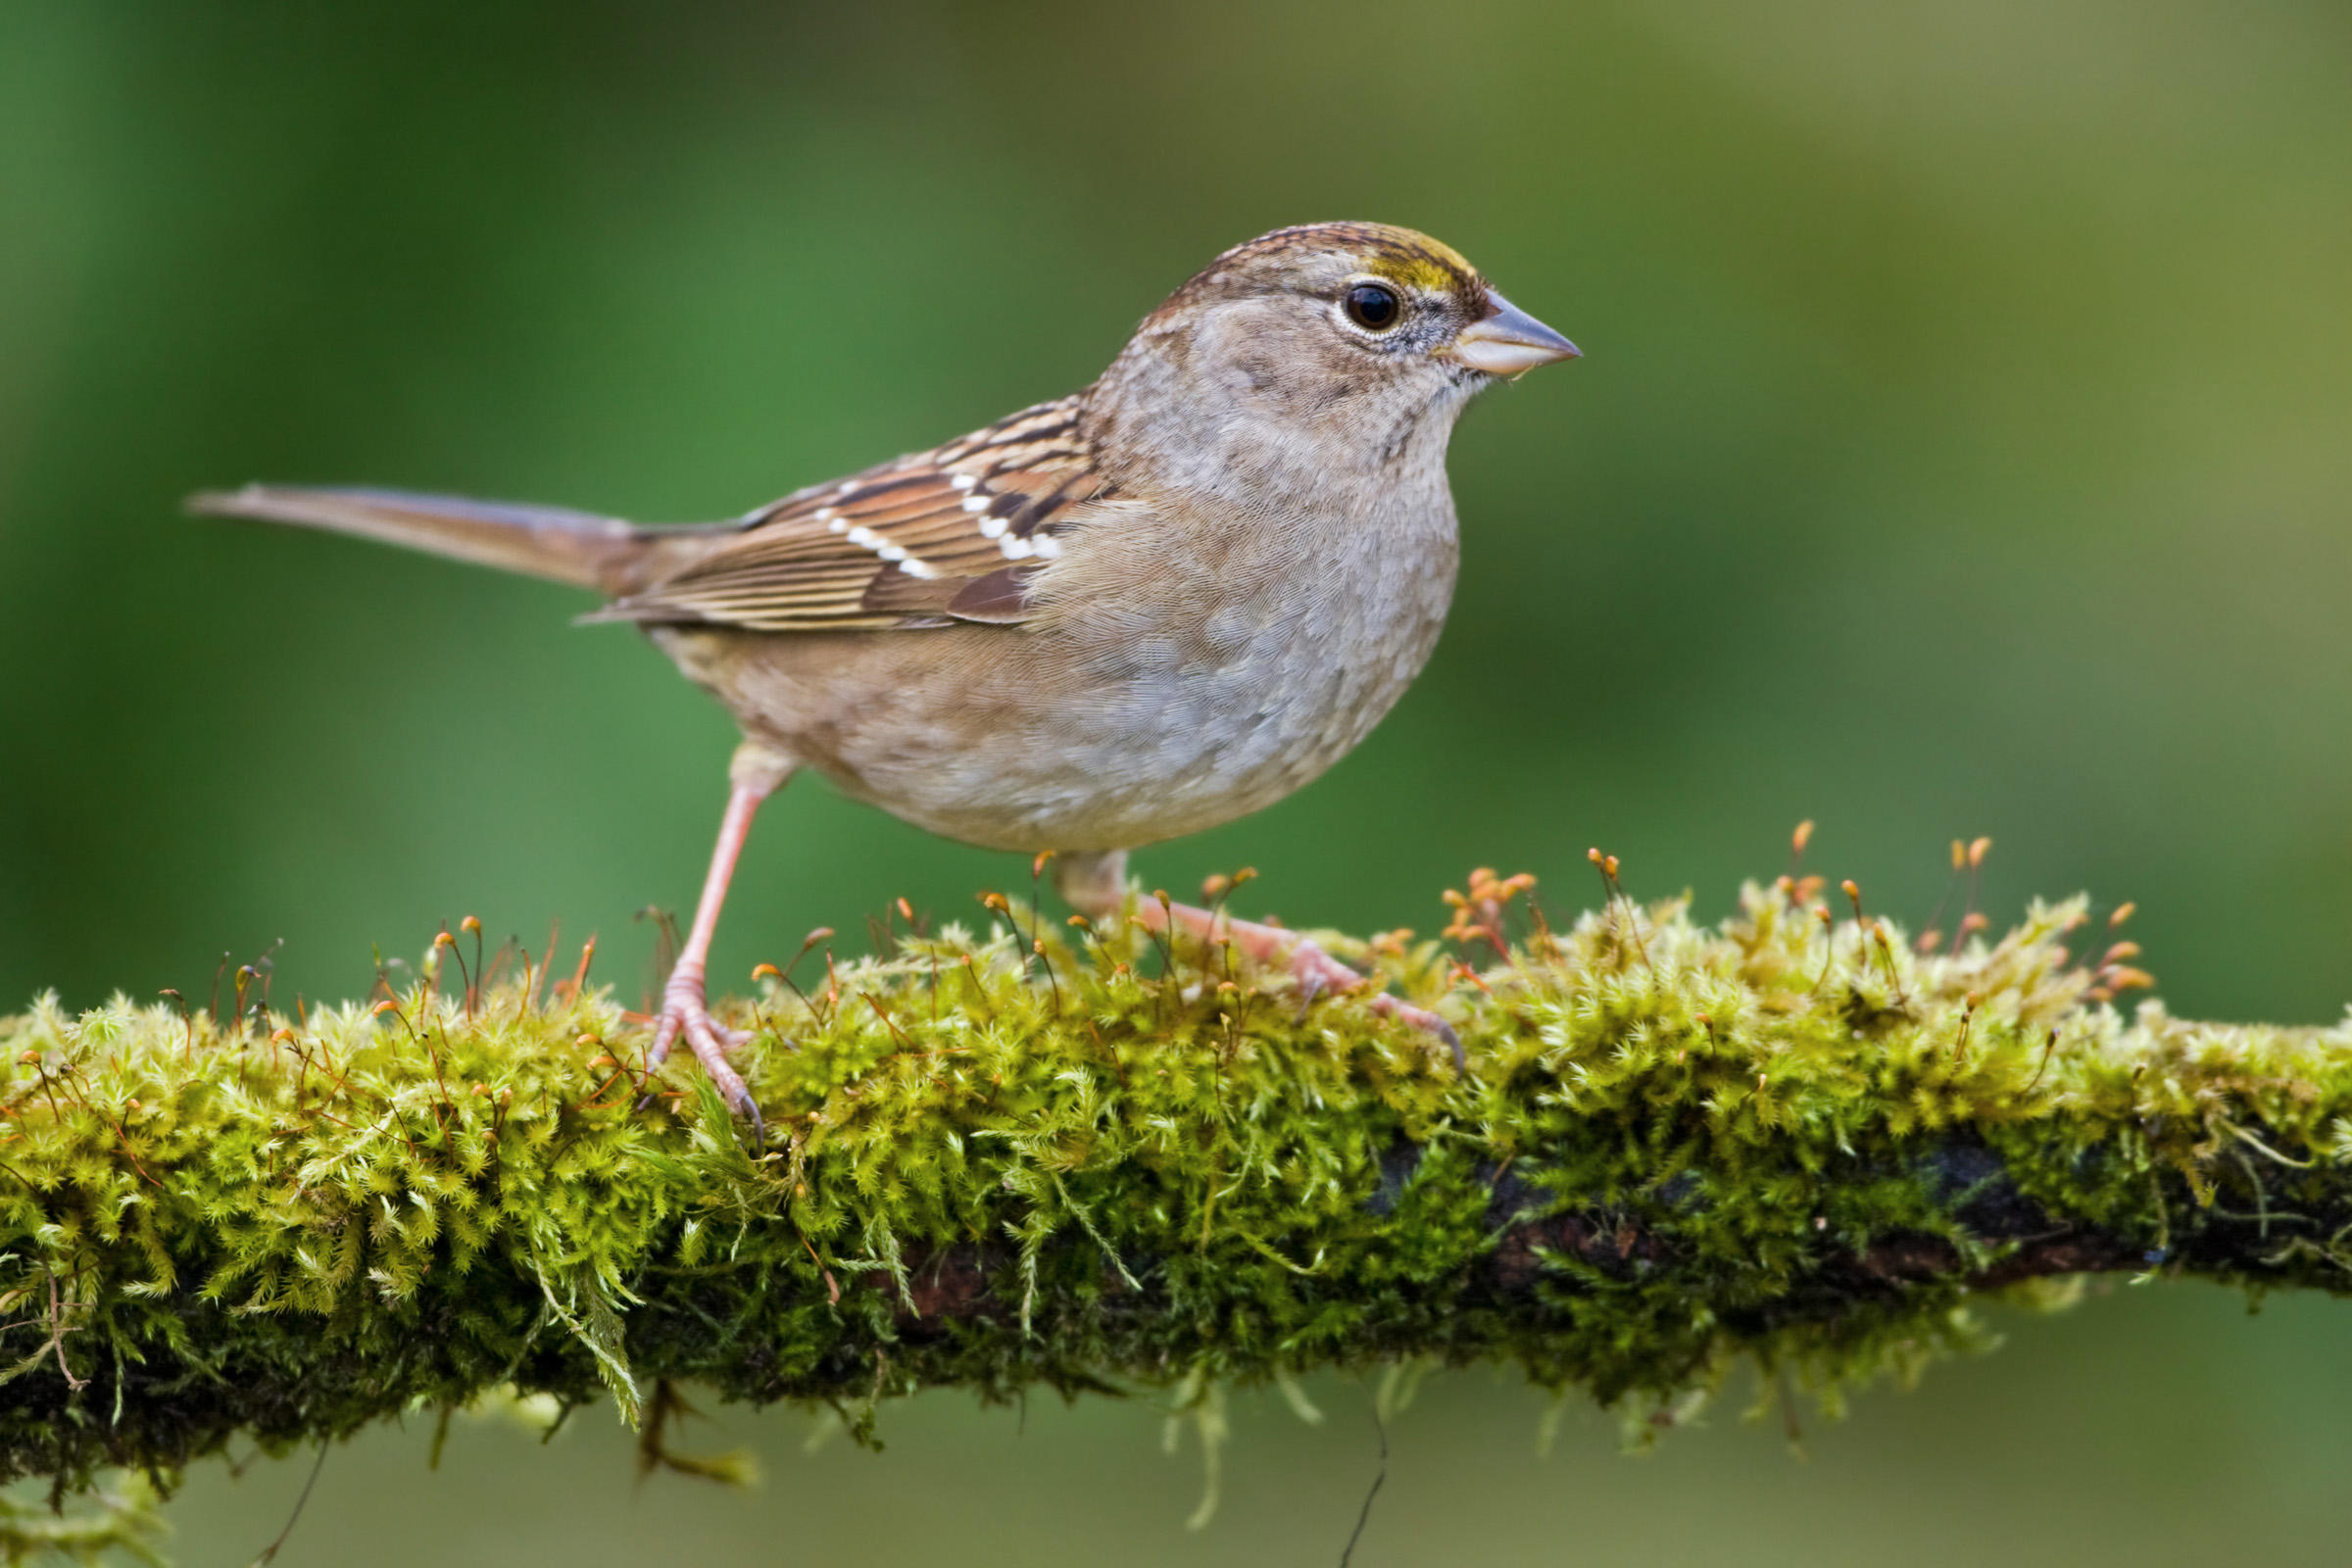 golden-crowned-sparrow-b57-5-114_v